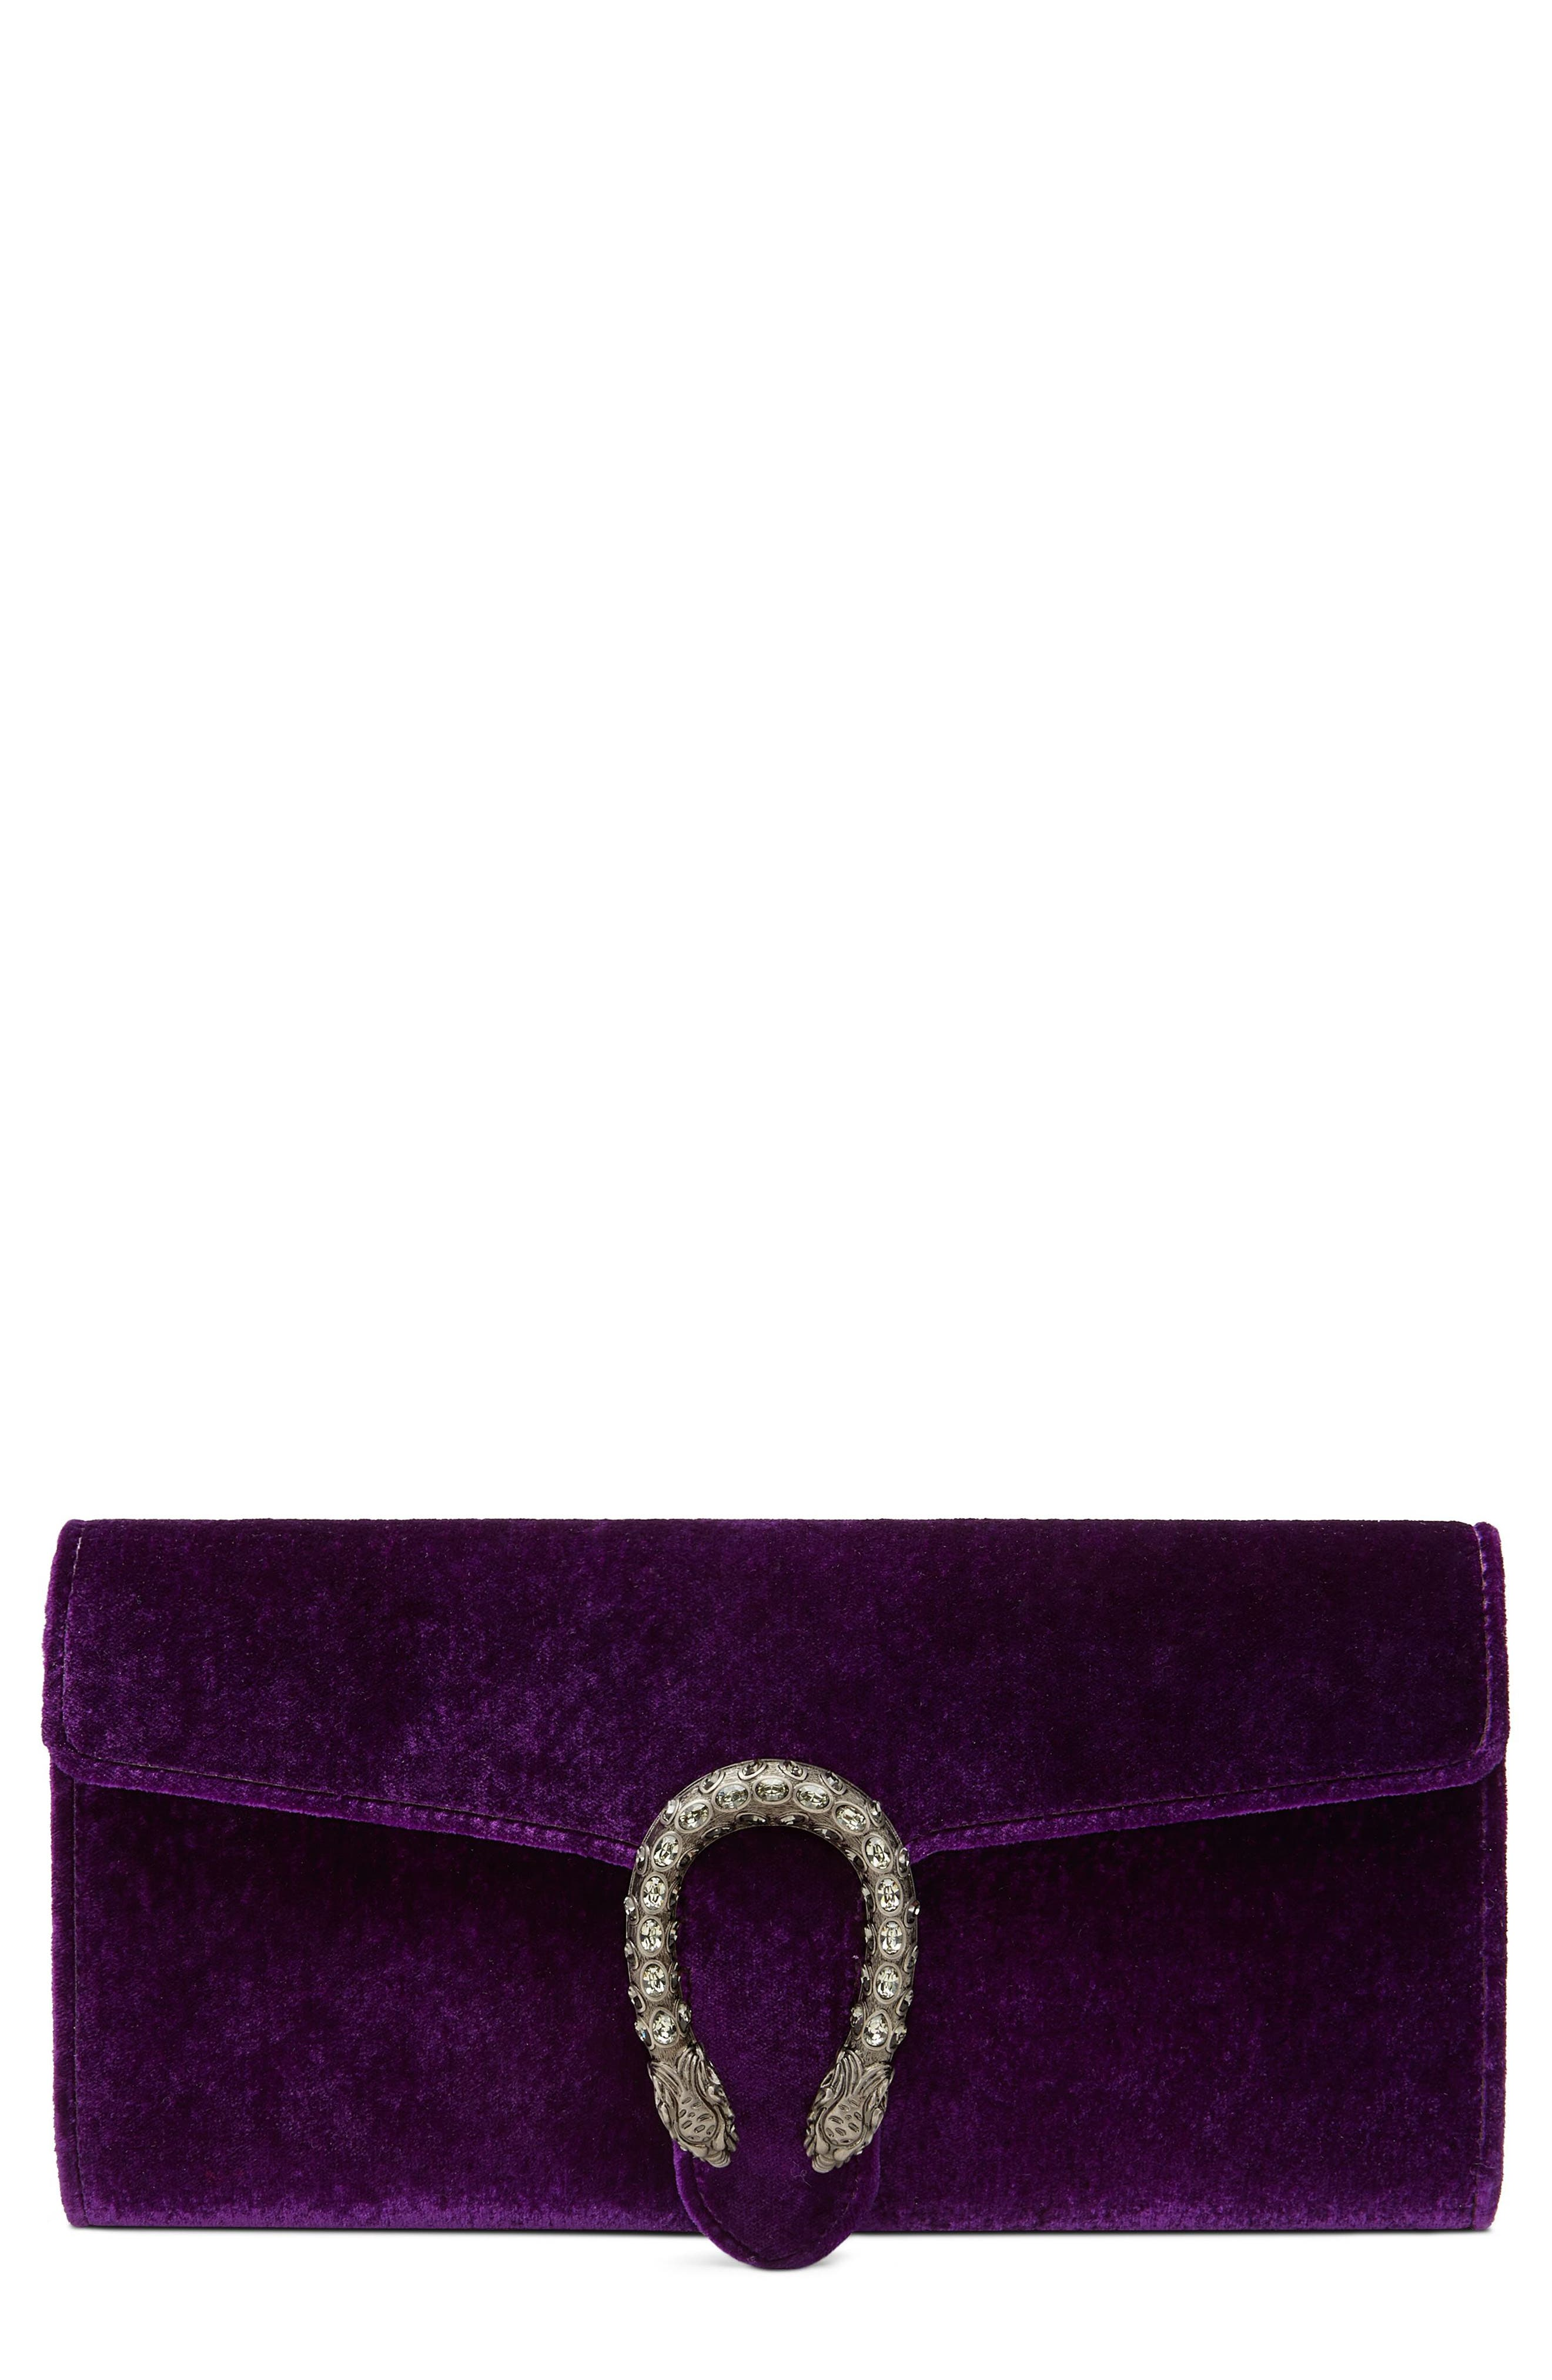 Dionysus Velvet Clutch,                             Main thumbnail 1, color,                             VIOLA/ BLACK DIAMOND